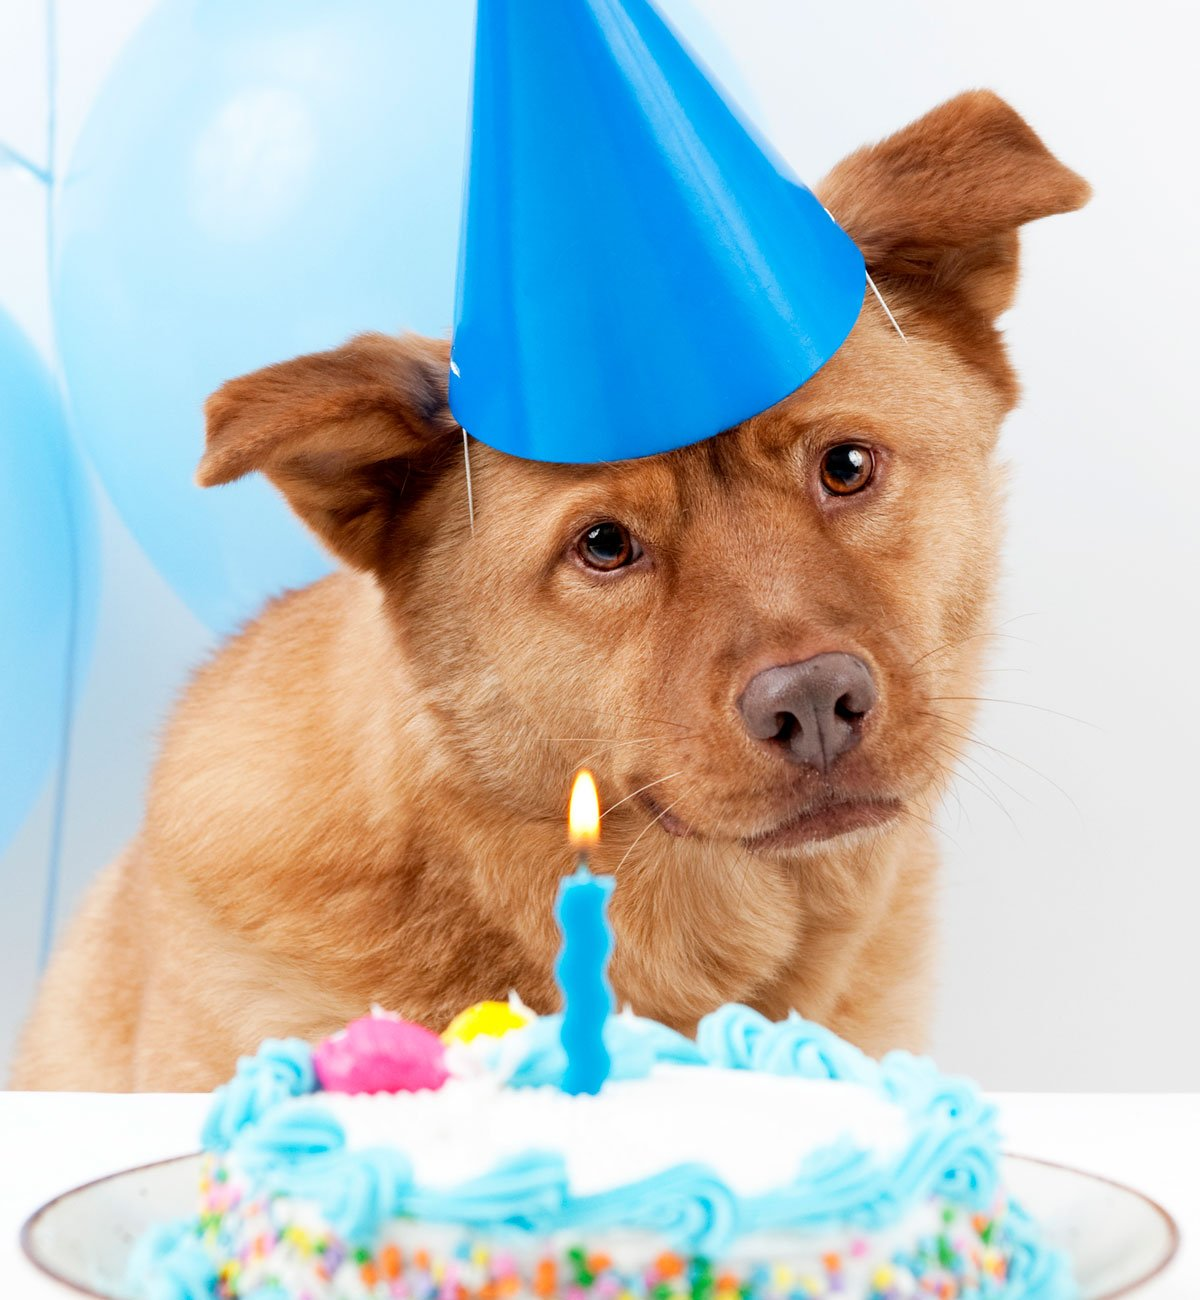 brown dog with a blue party hat and birthday cake with a candle